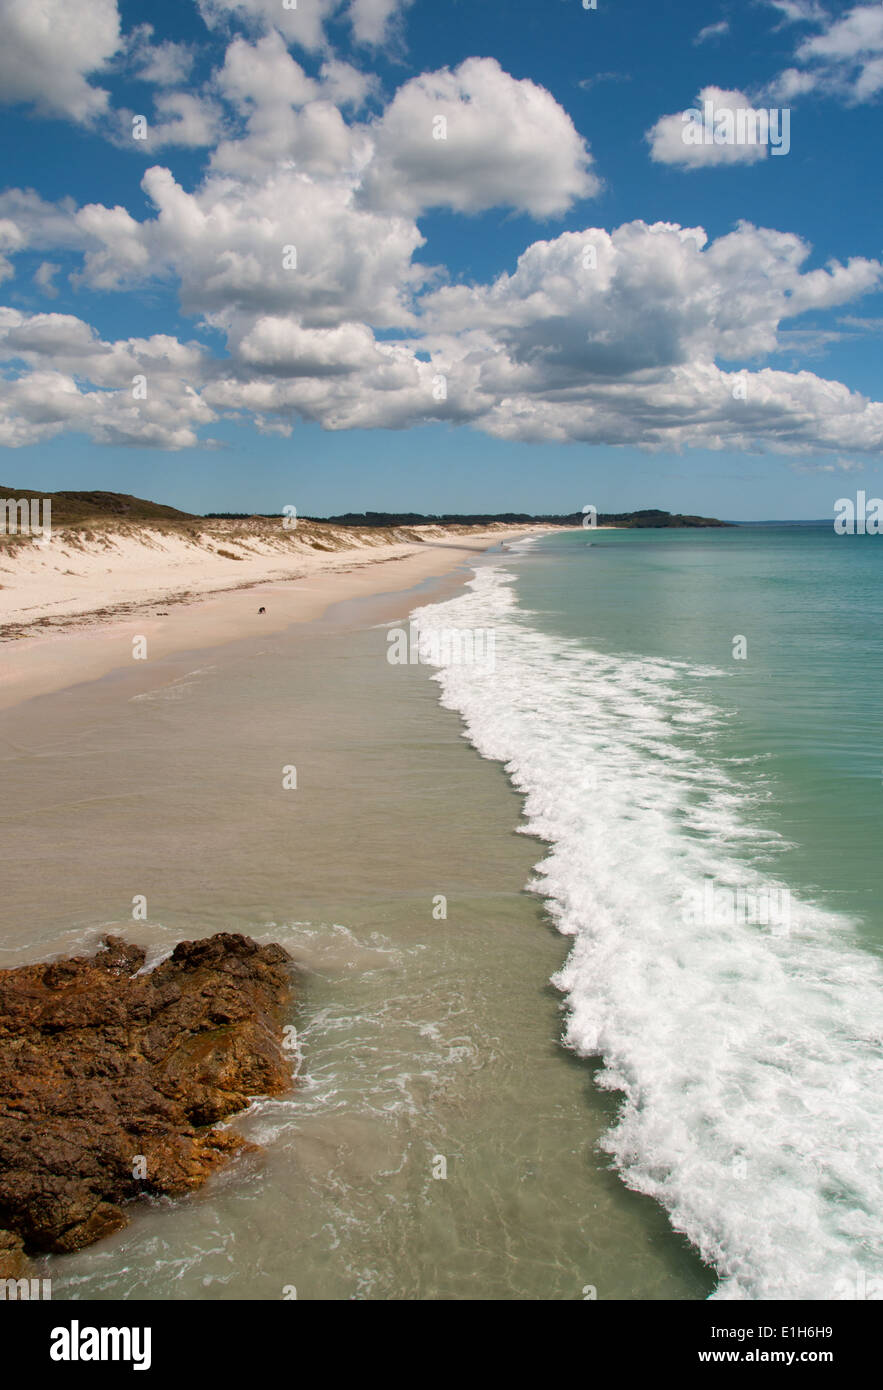 Kariikari beach in the Far North, North Island New Zealand - Stock Image